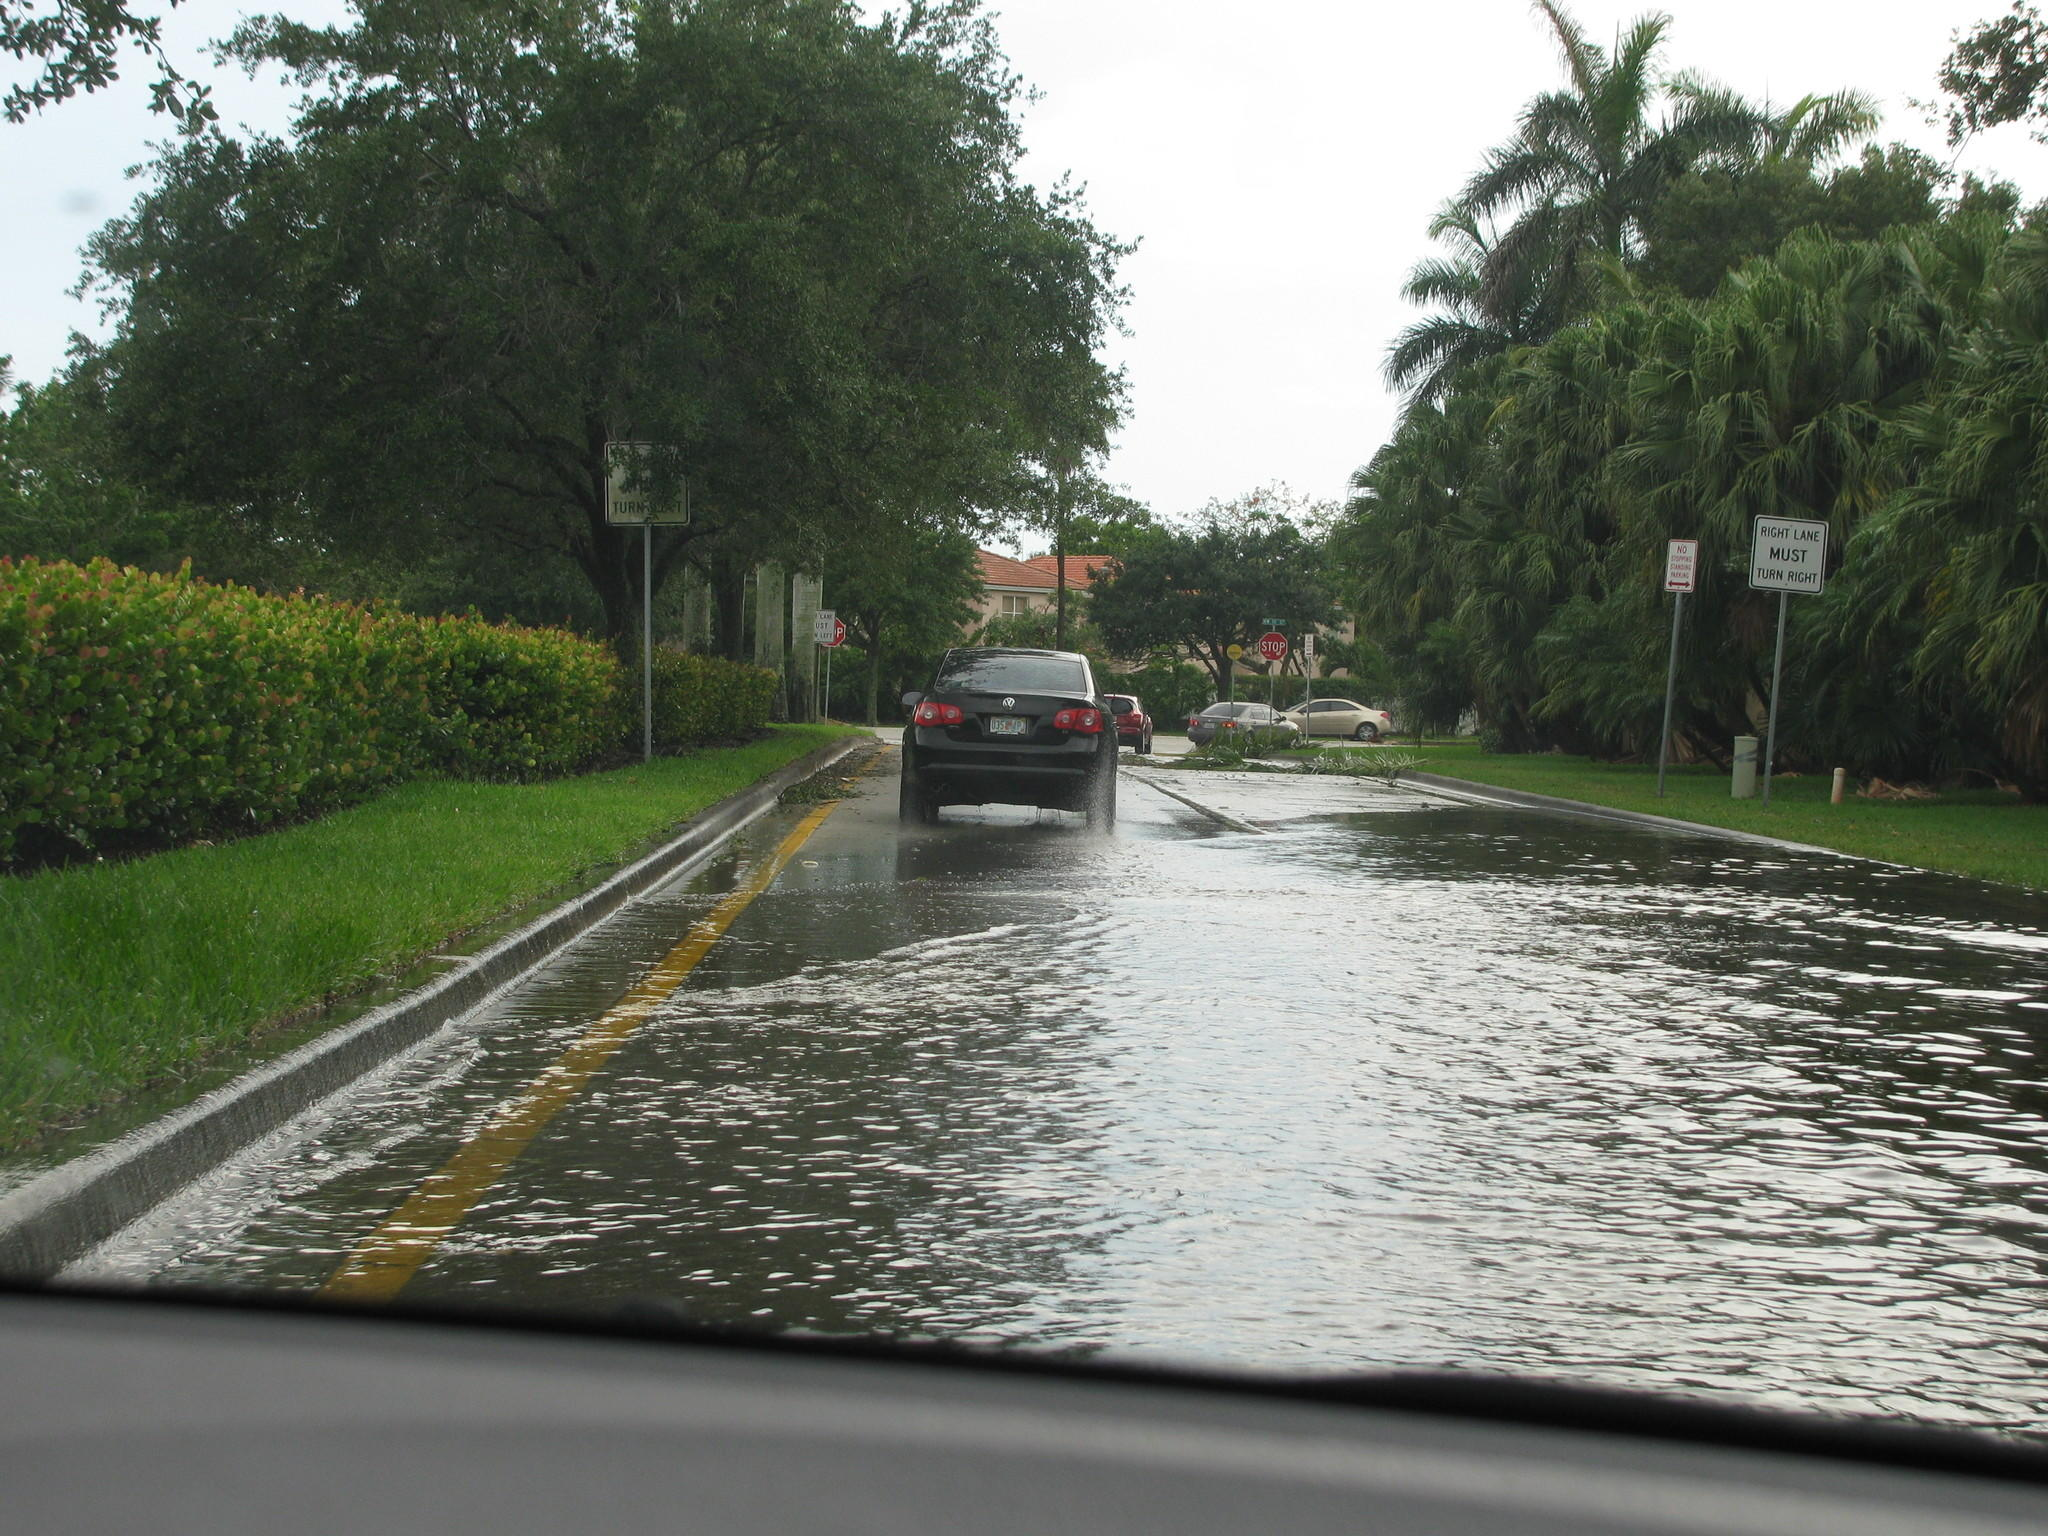 Local streets filled with water, palm fronds and other debris Wednesday afternoon, June 11, in this Pembroke Pines neighborhood when a fast-moving thunderstorm ripped through west Broward County.